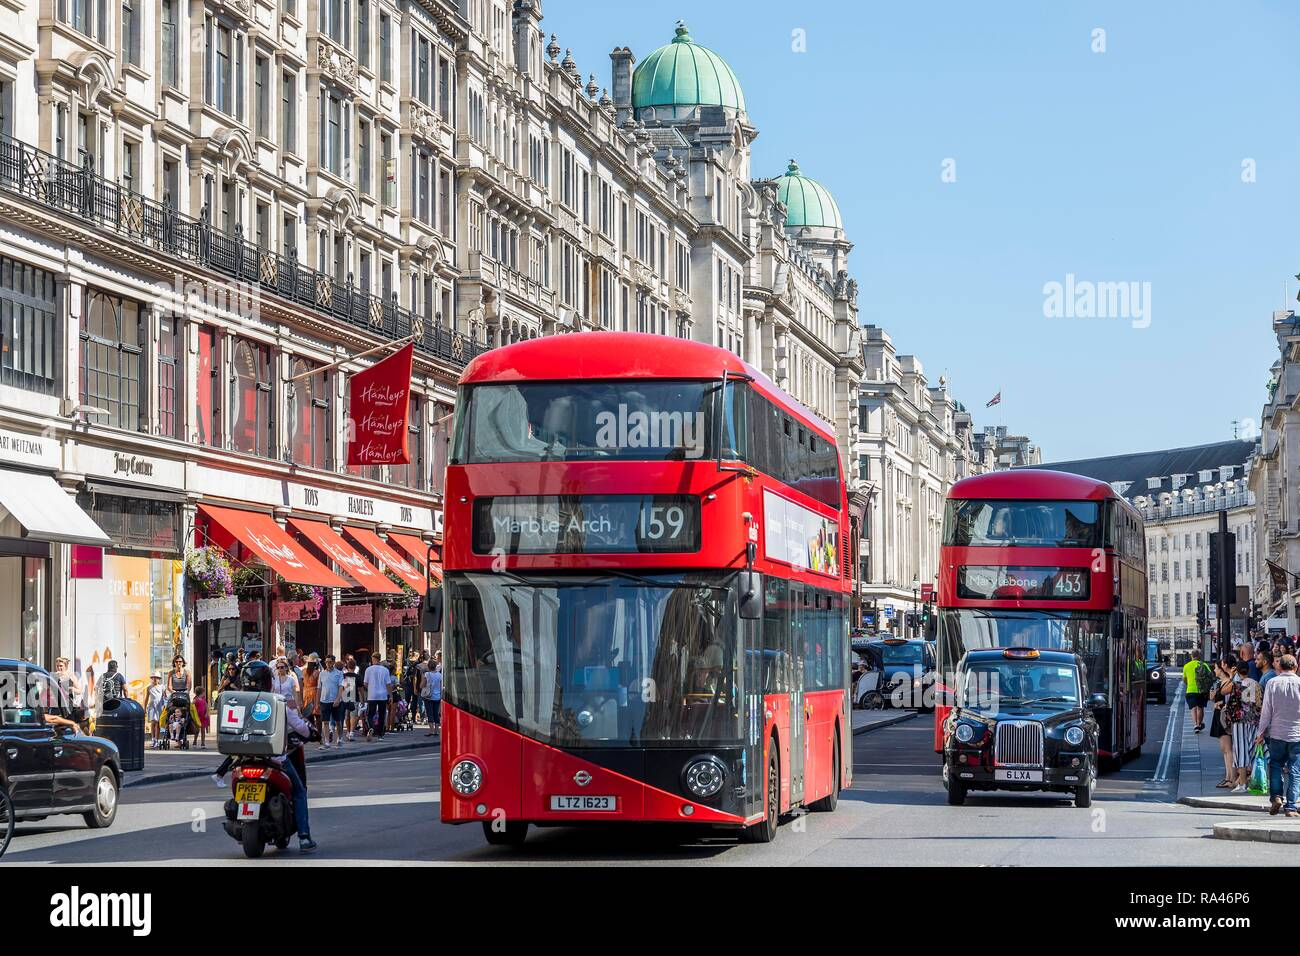 Red double-decker buses in the shopping street Regent Street, London, Great Britain - Stock Image